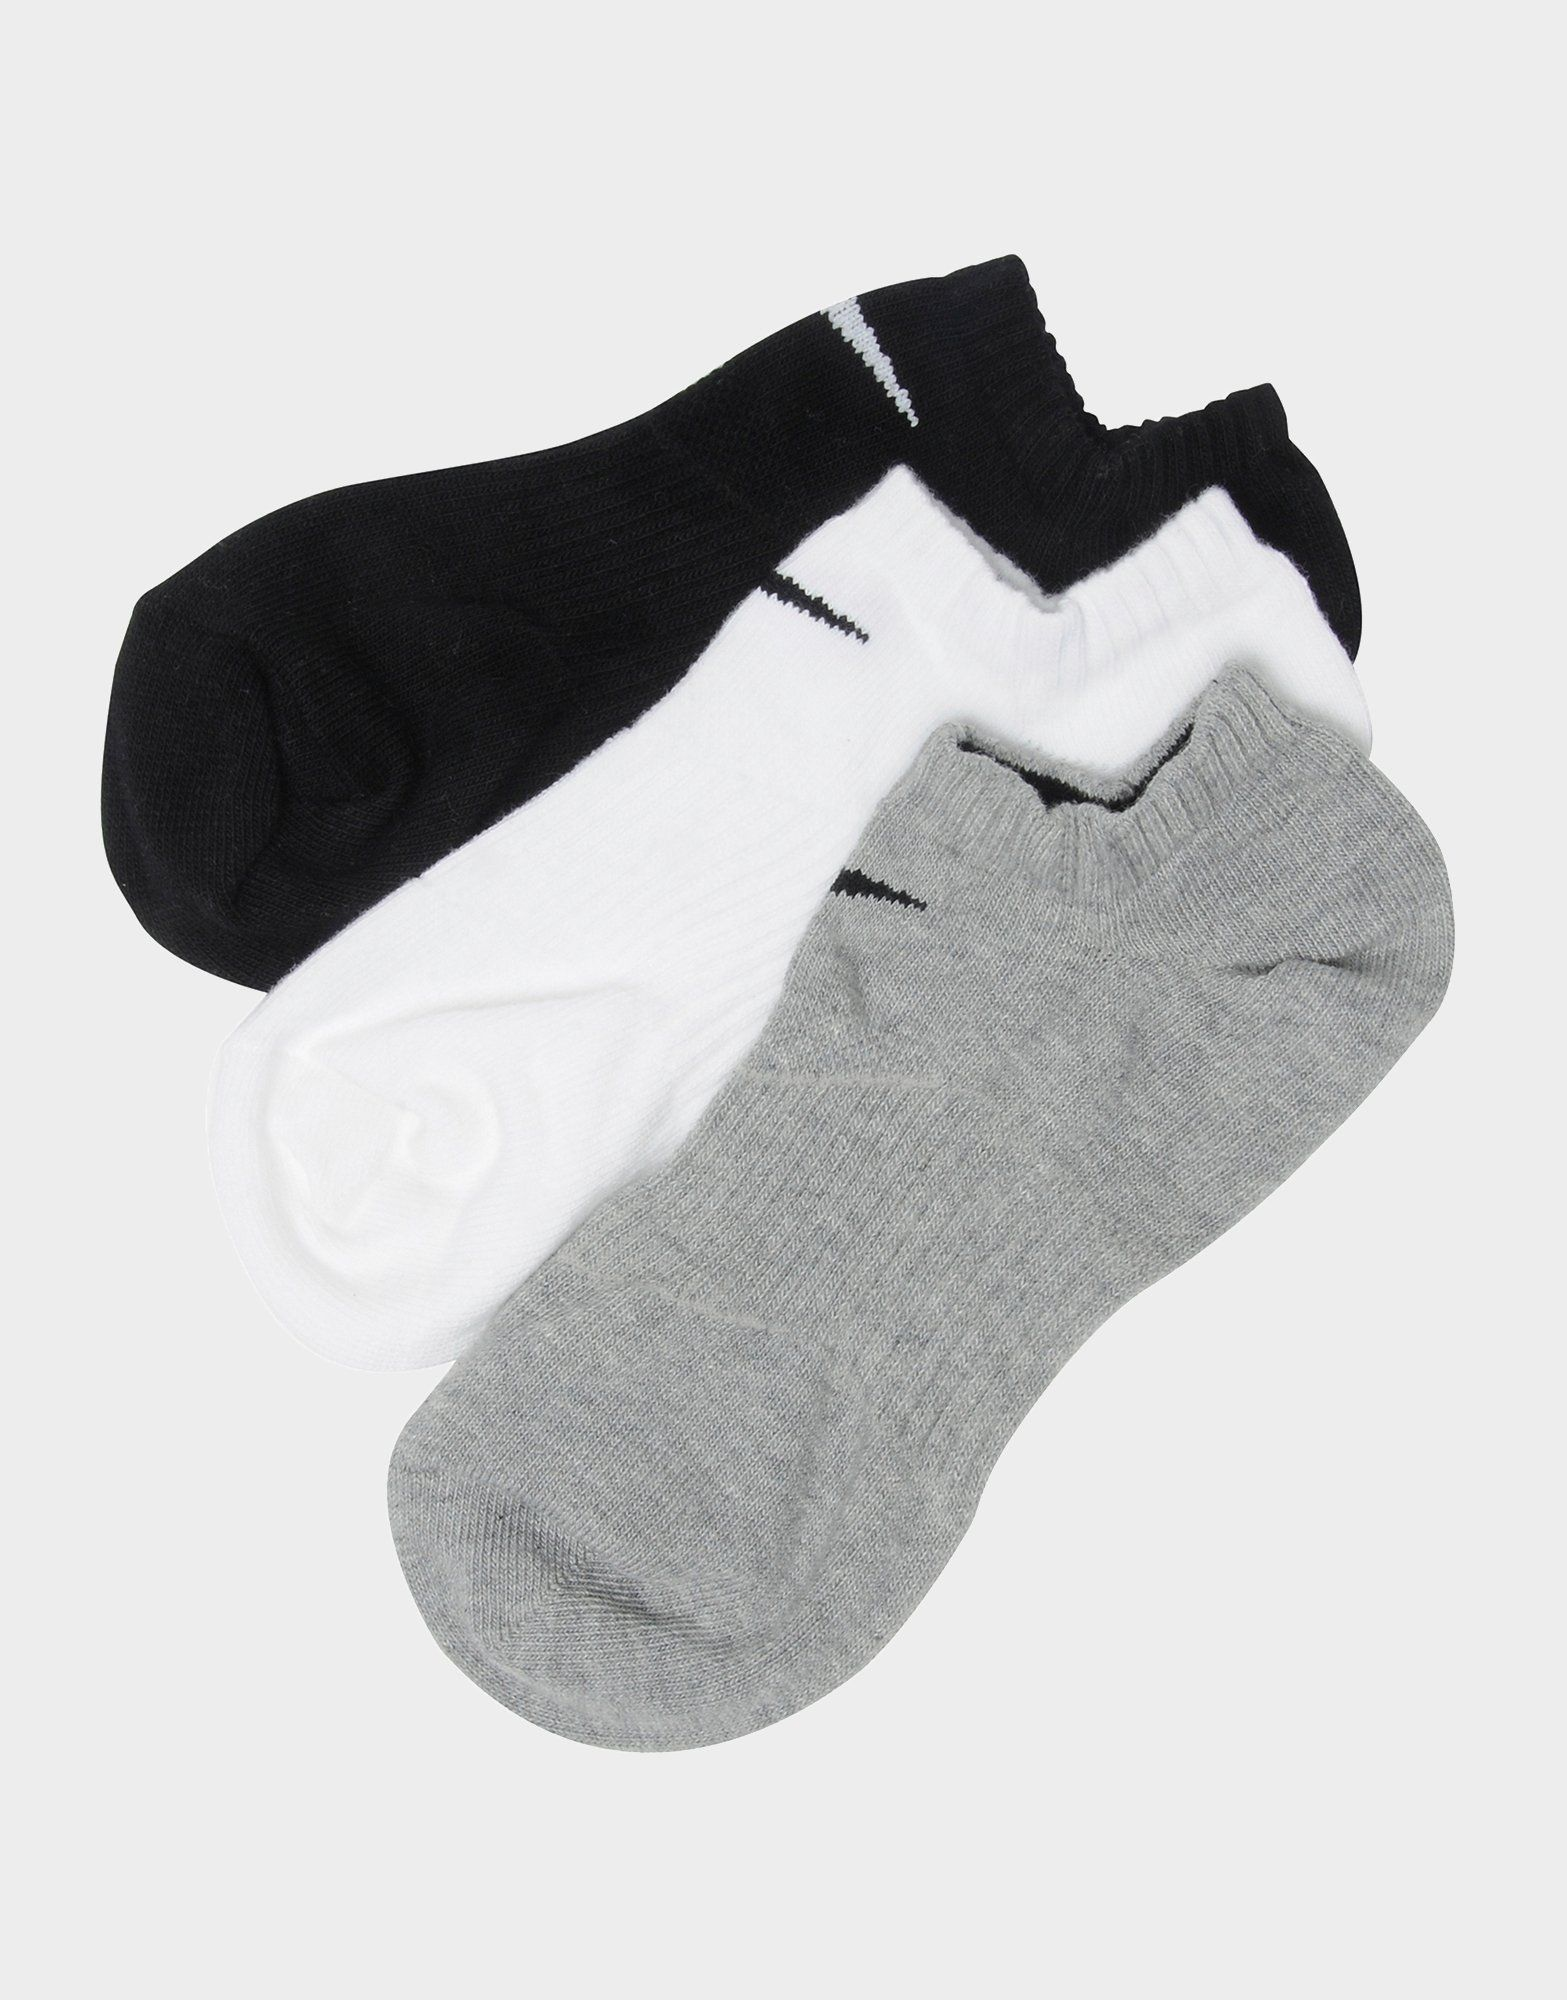 the best attitude c5108 32c08 Nike 3 Pack Low Ped Socks   JD Sports 60%OFF